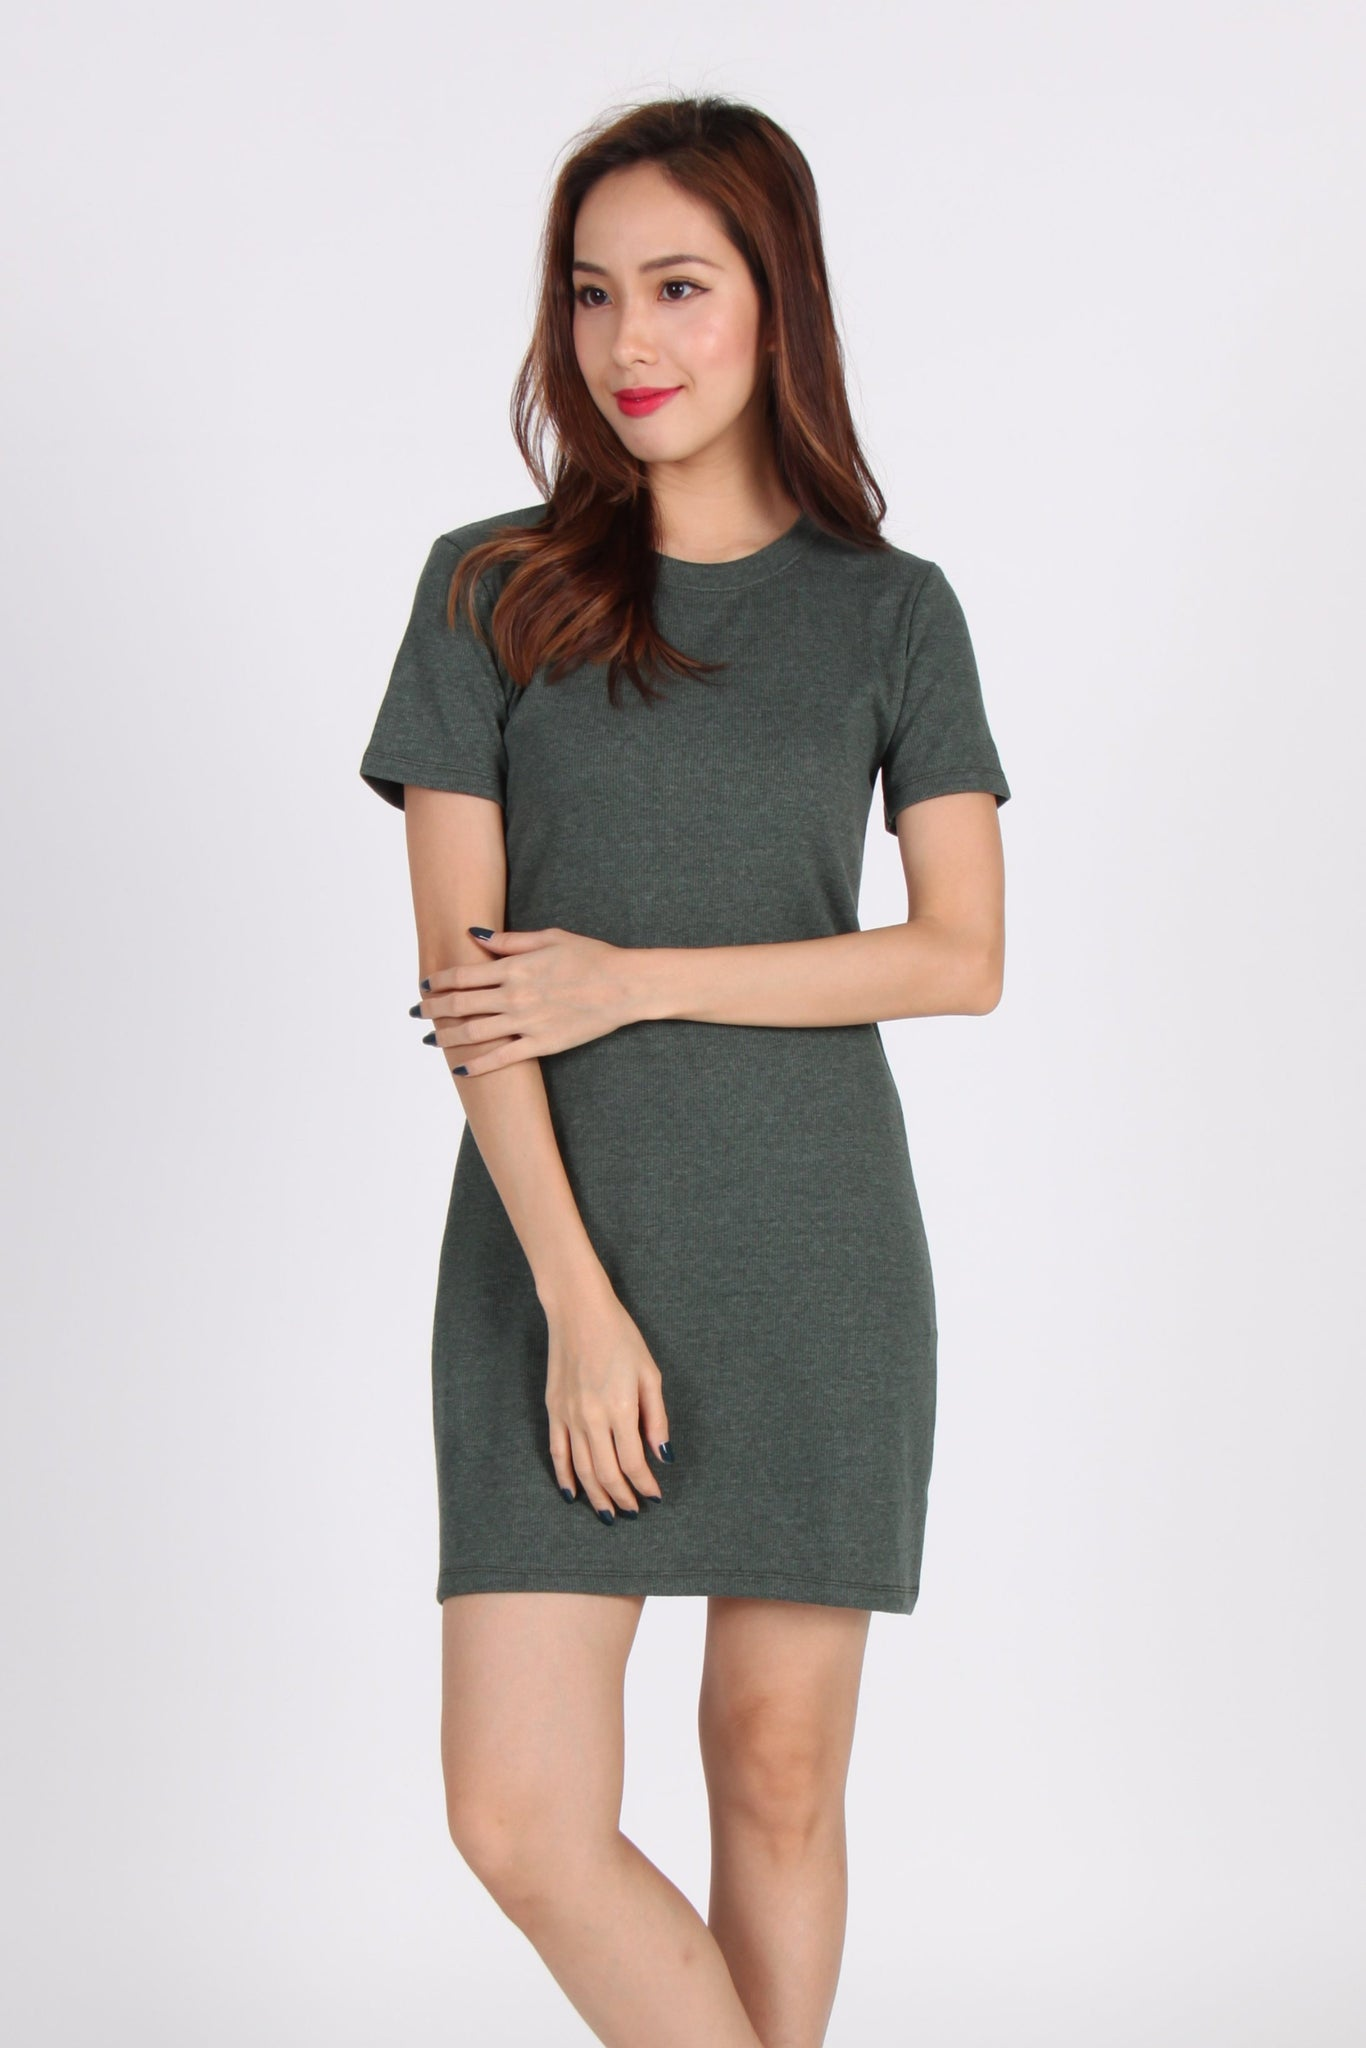 Basic Comfy Tee Dress in Seaweed Green